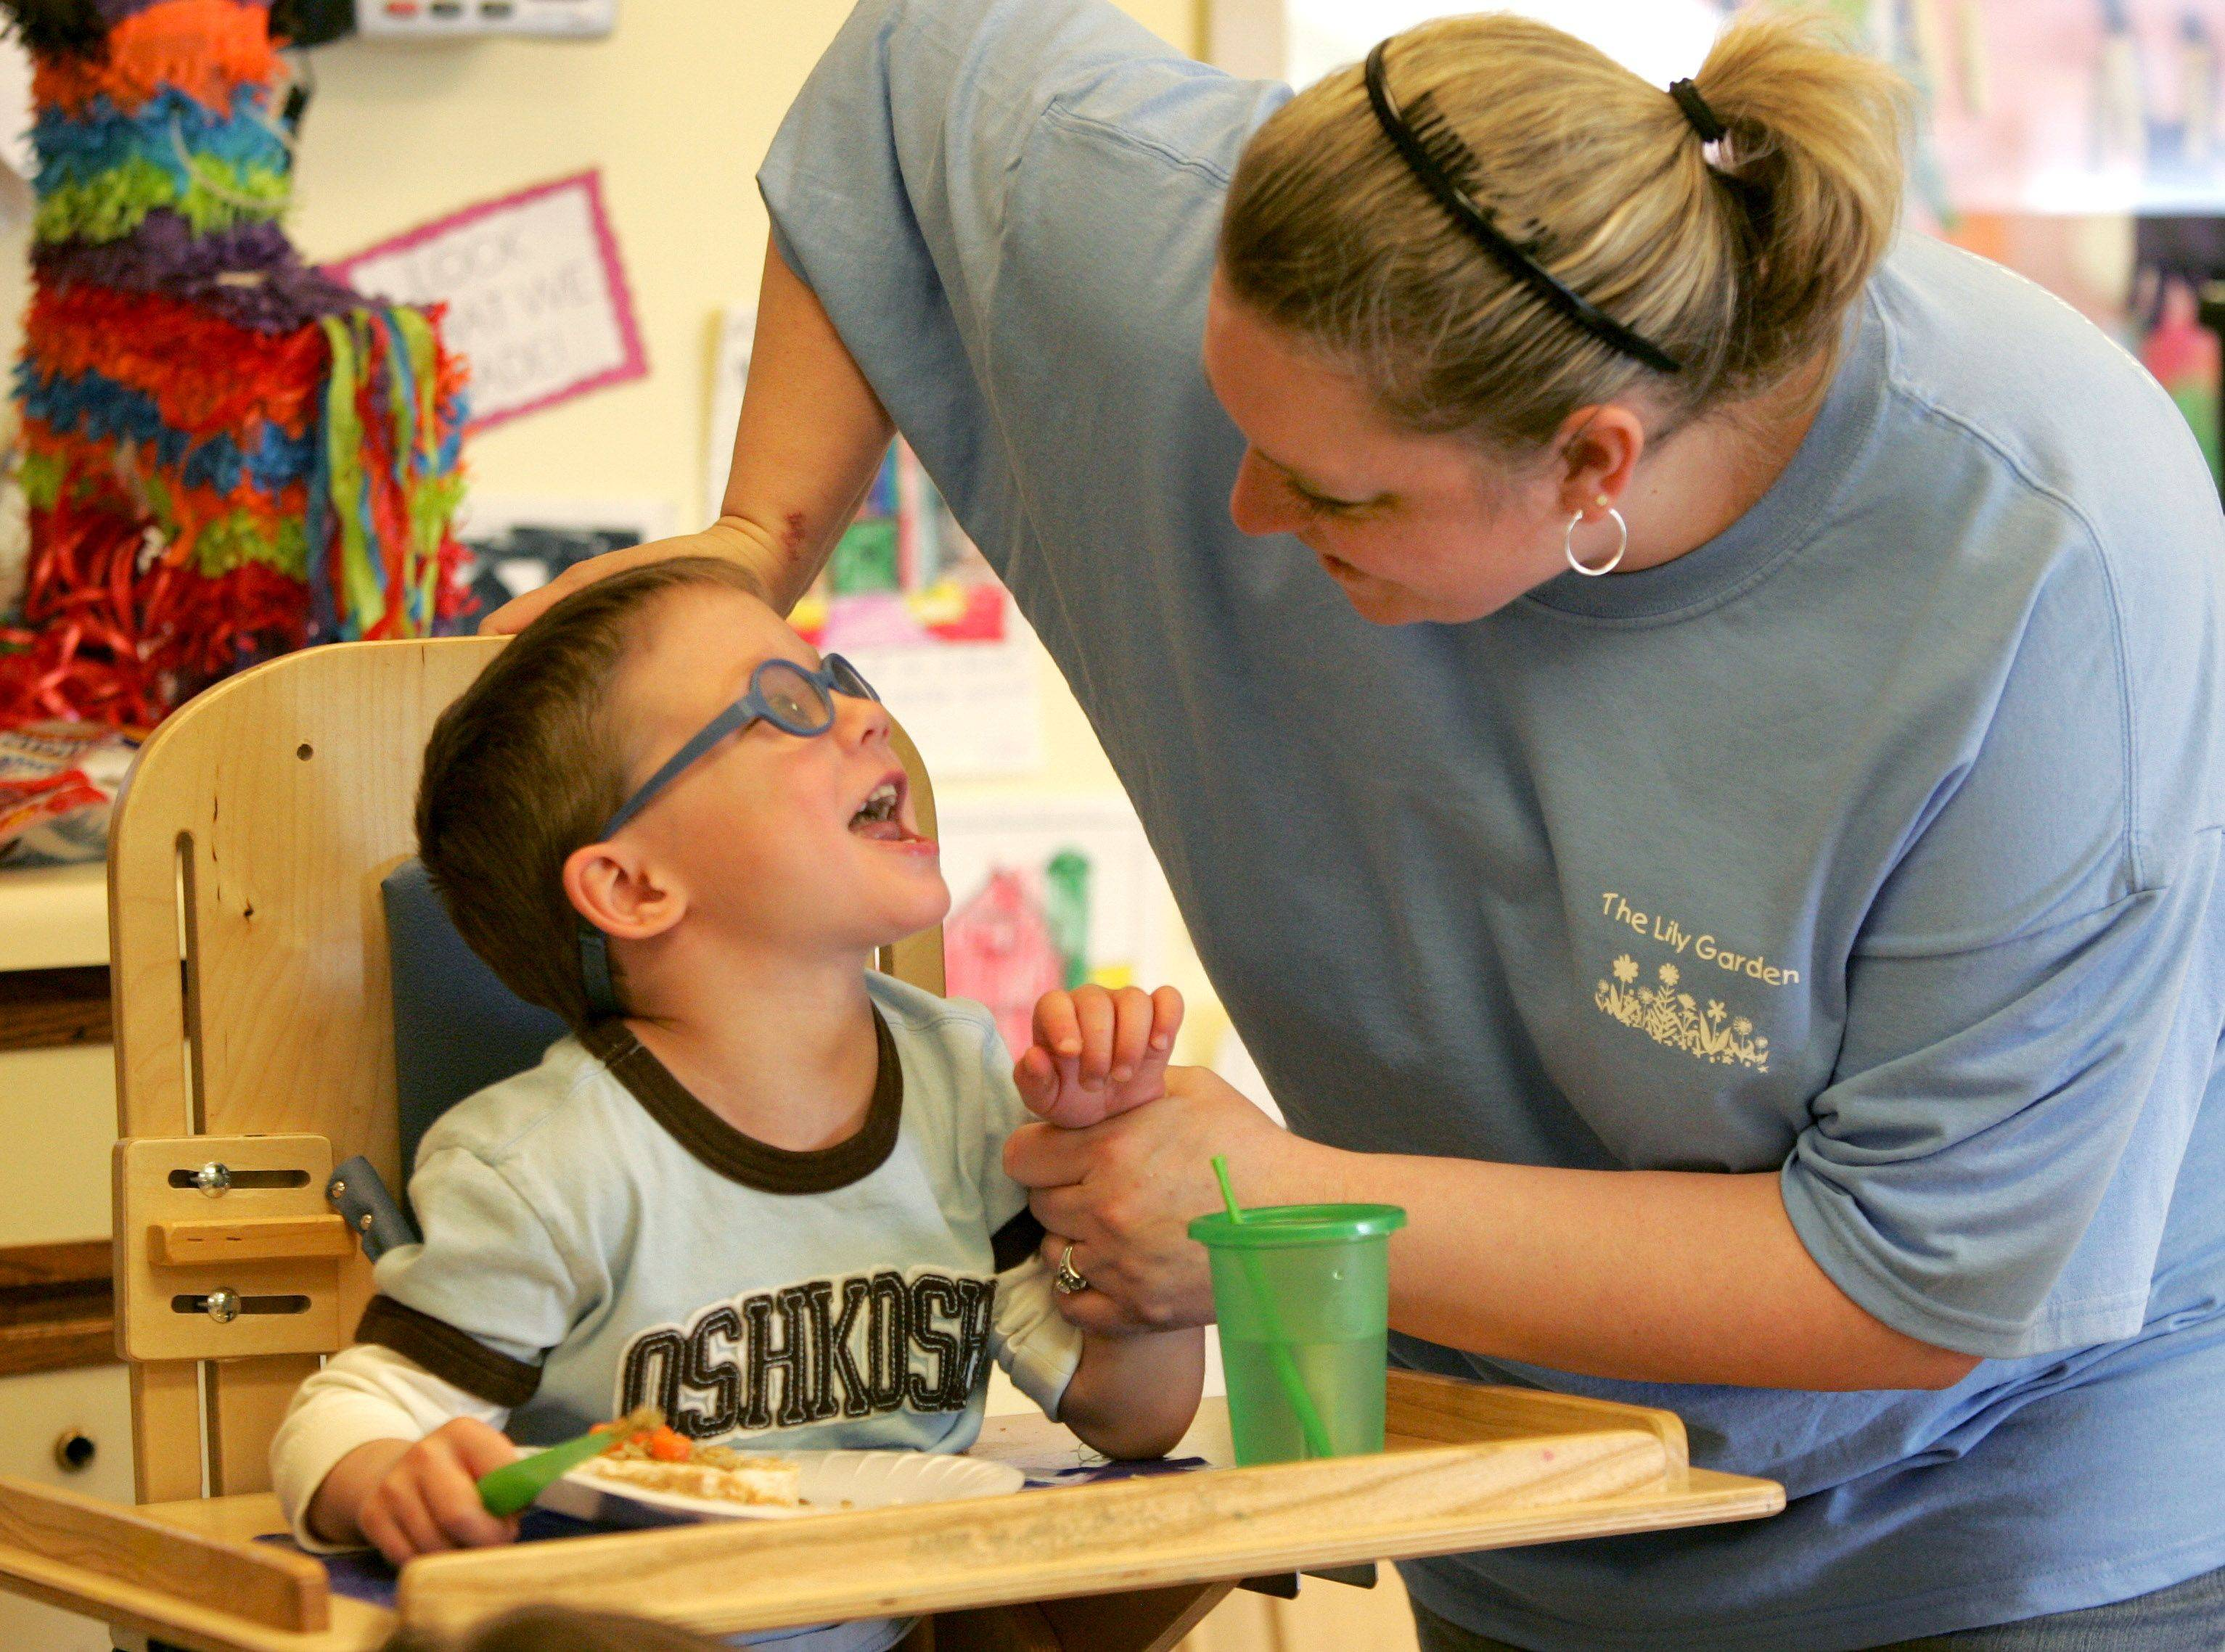 Kelly Lopresti, director of the Lily Garden child care center at Easter Seals in Villa Park, greets Charlie Krupka, 4.